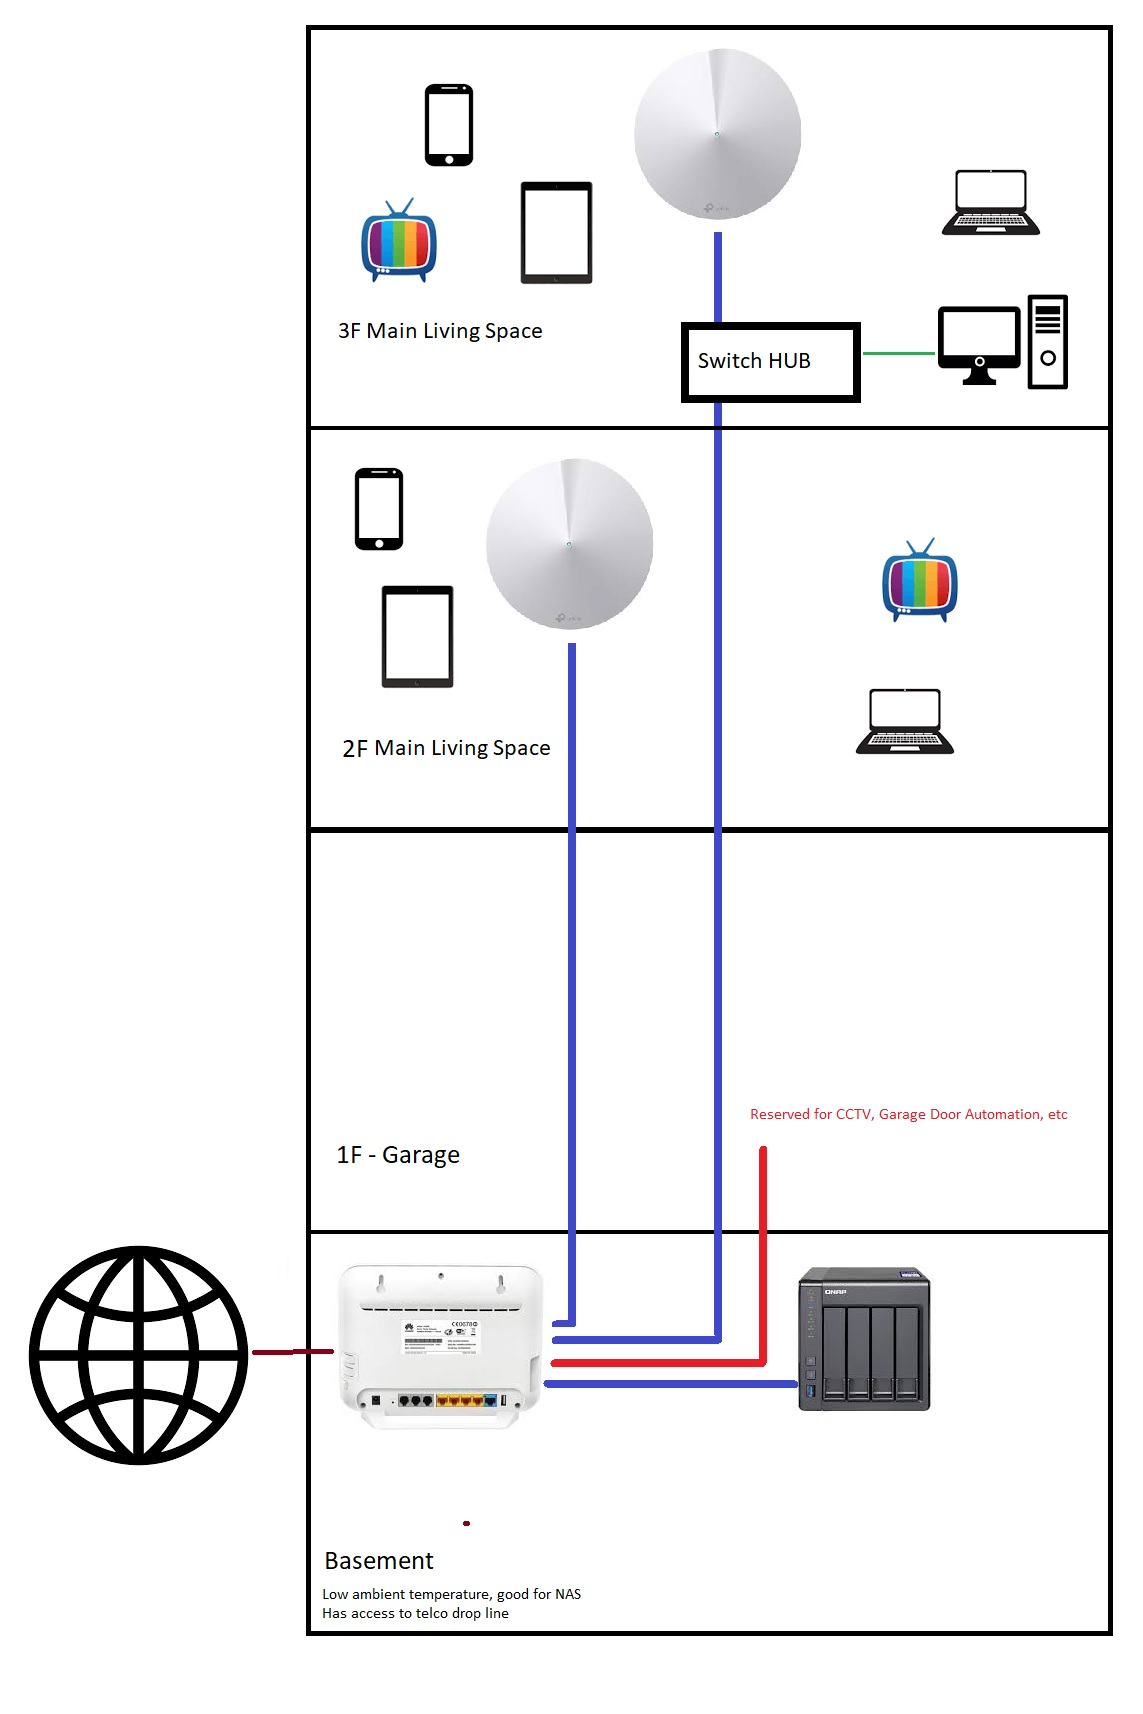 [WLLP_2054]   Need help properly wiring up my house for DECO - TP-Link SOHO Community | House To Garage Wiring Diagram |  | TP-Link Community